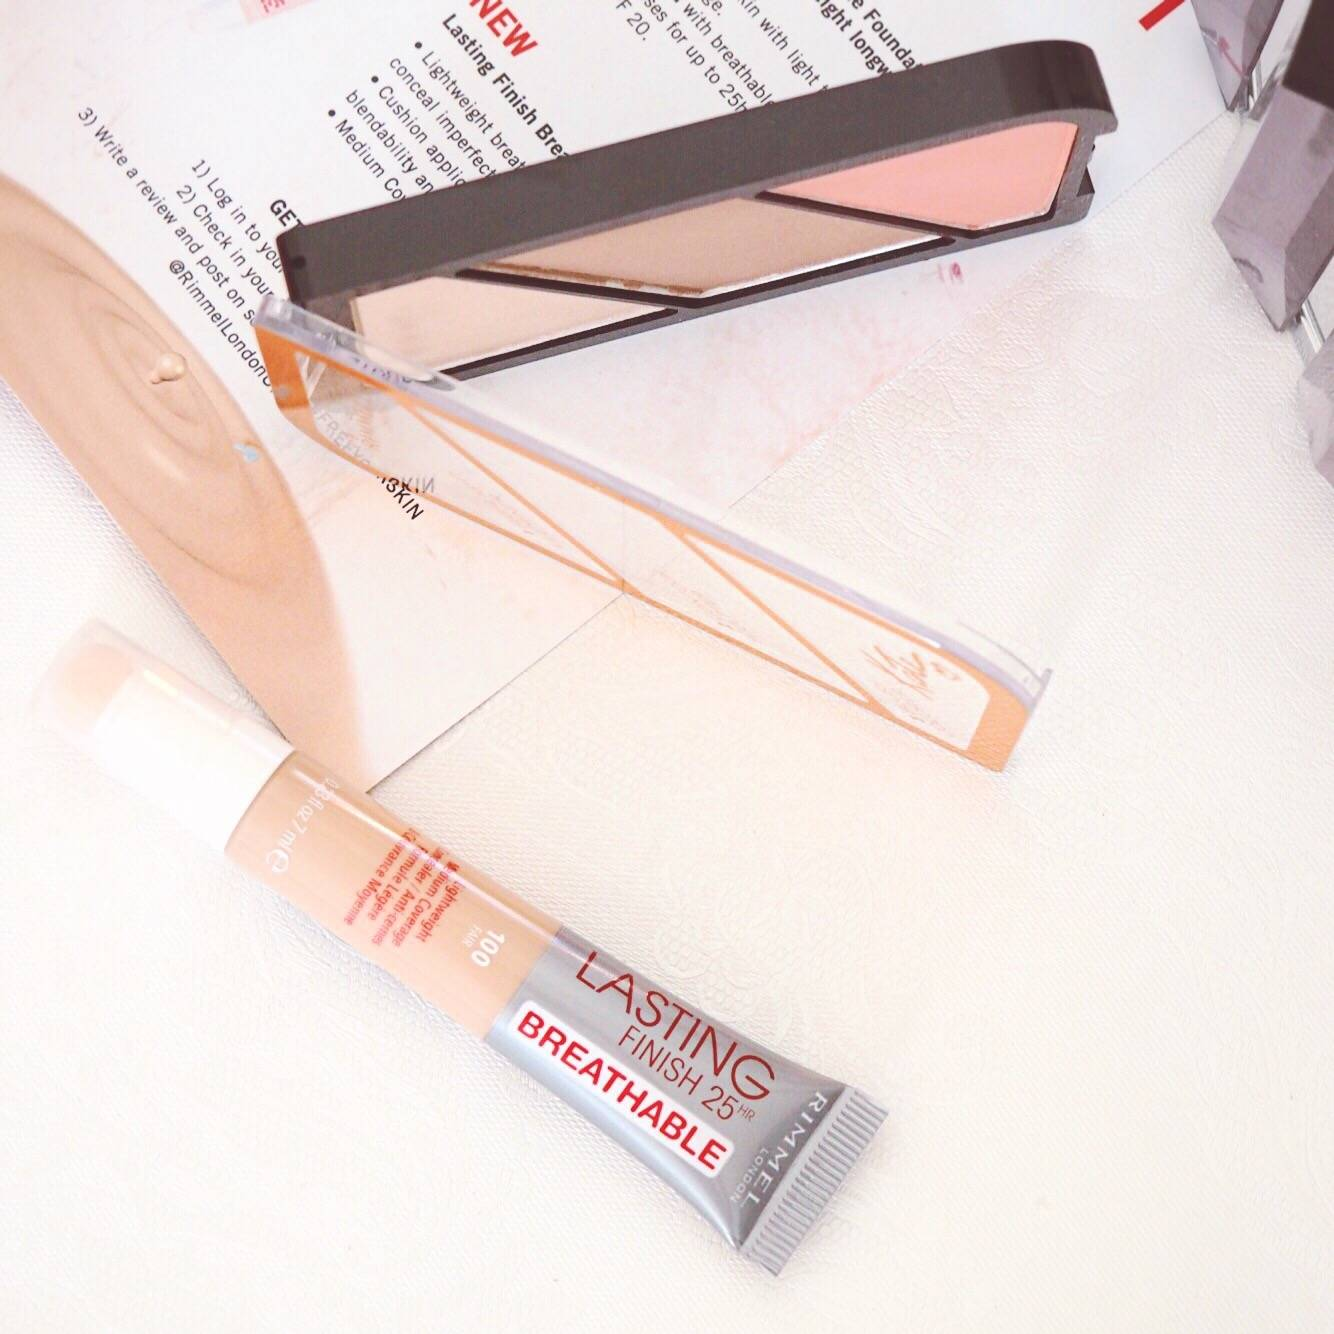 Rimmel London Breathable Concealer Review